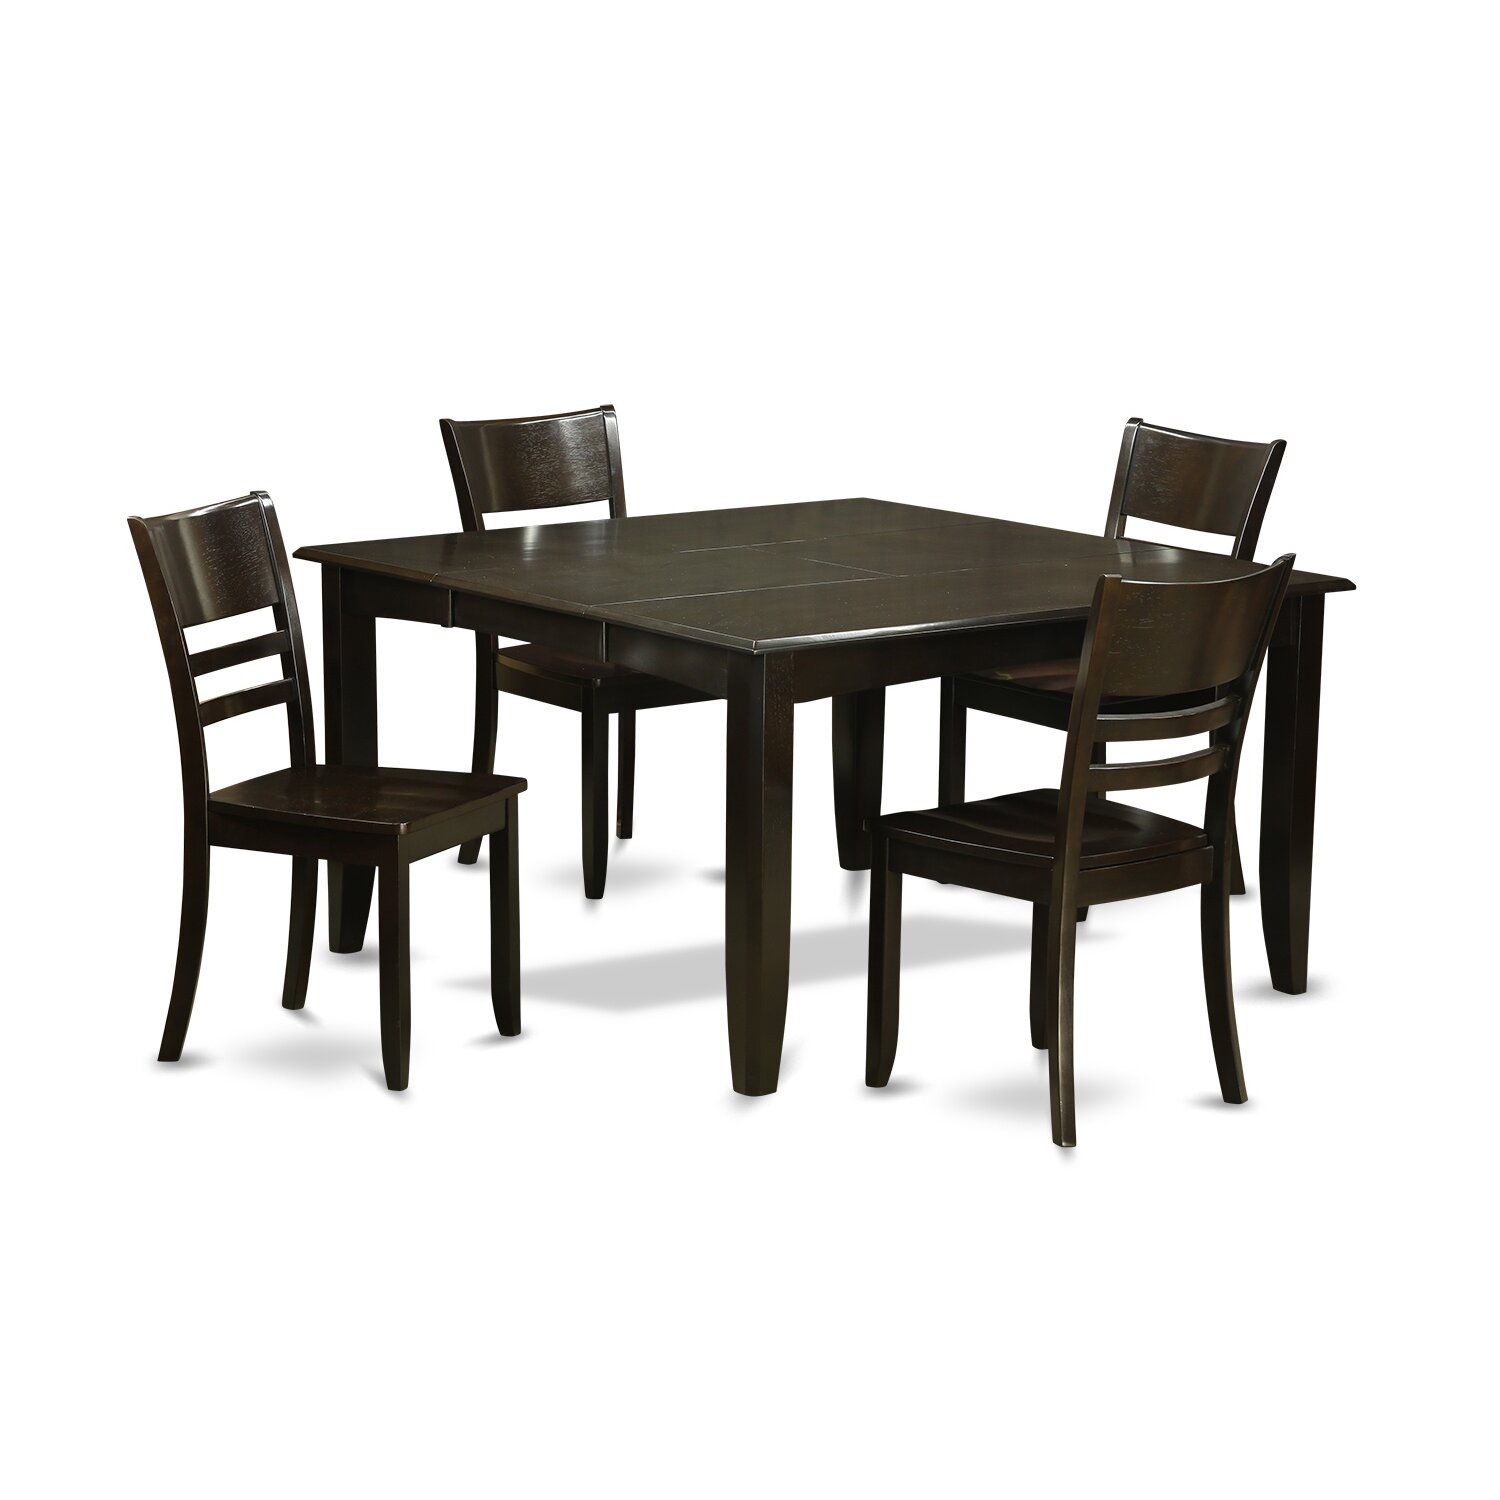 Wooden importers parfait 5 piece dining set wayfair for Kitchen dining room furniture